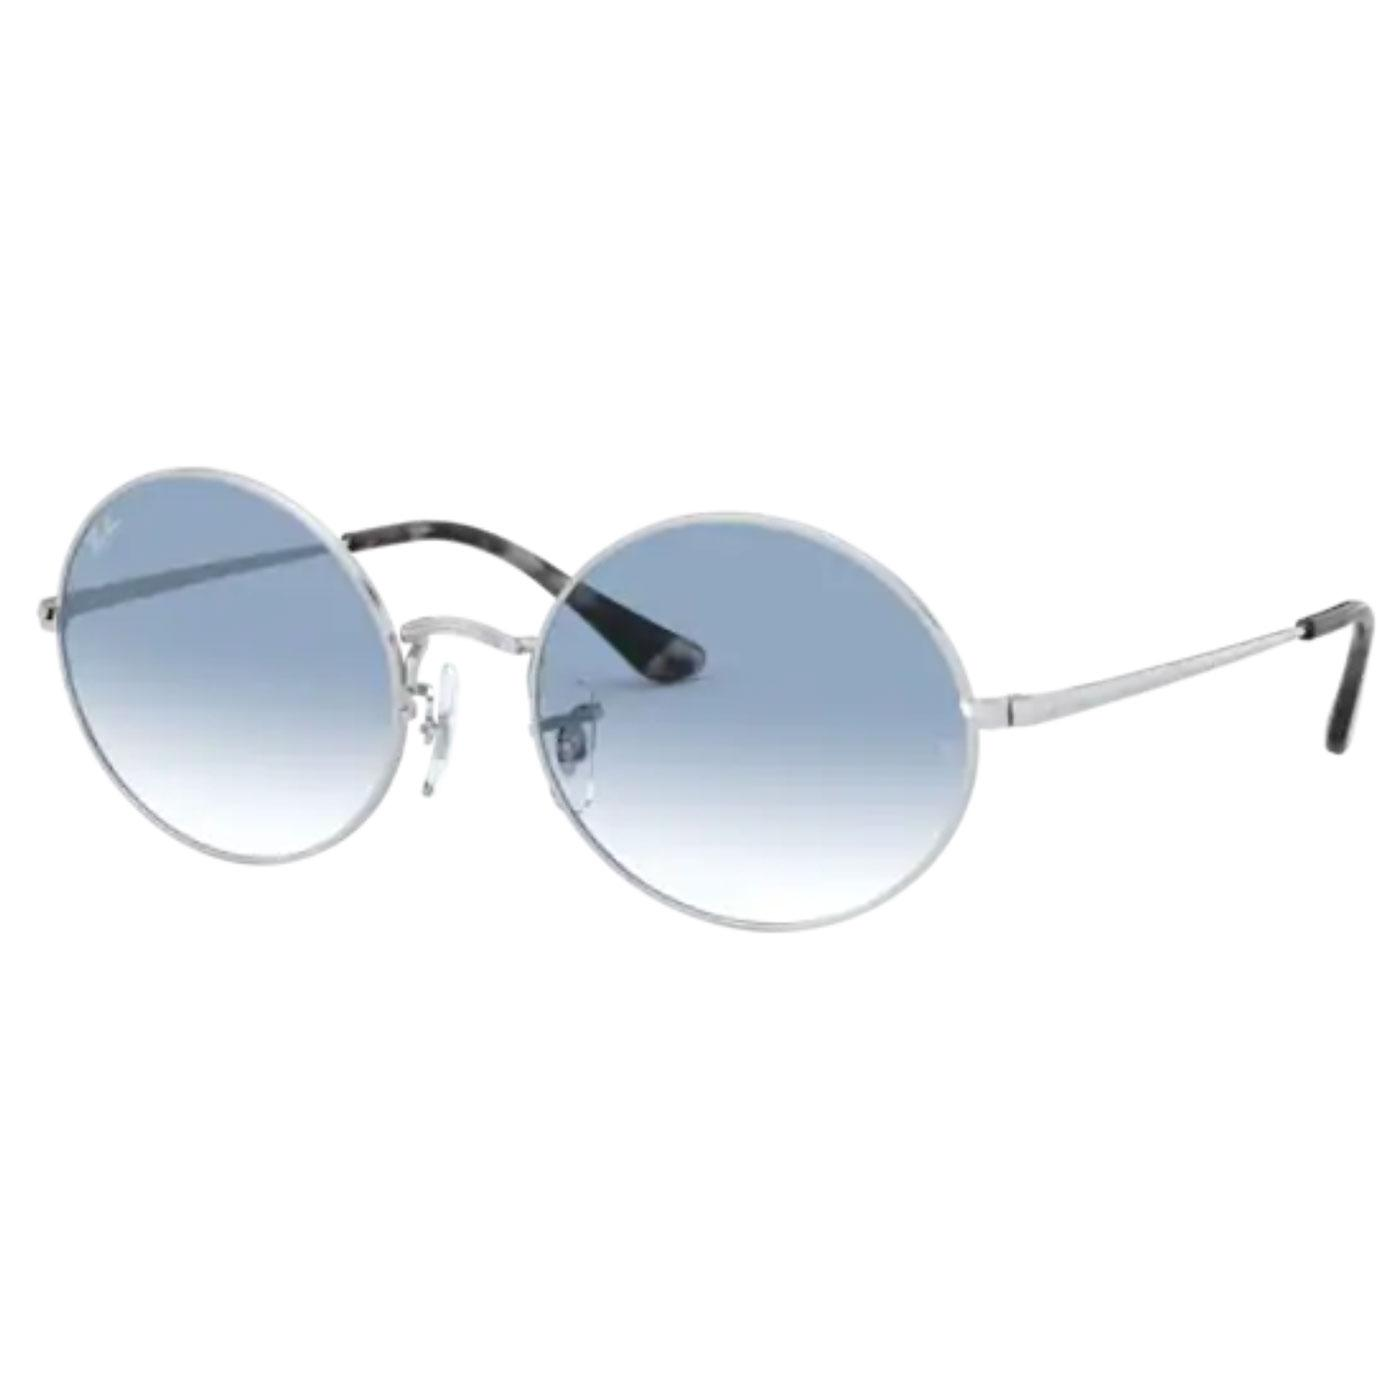 RAY-BAN RB1970 Retro Oval Sunglasses (Silver/Blue)